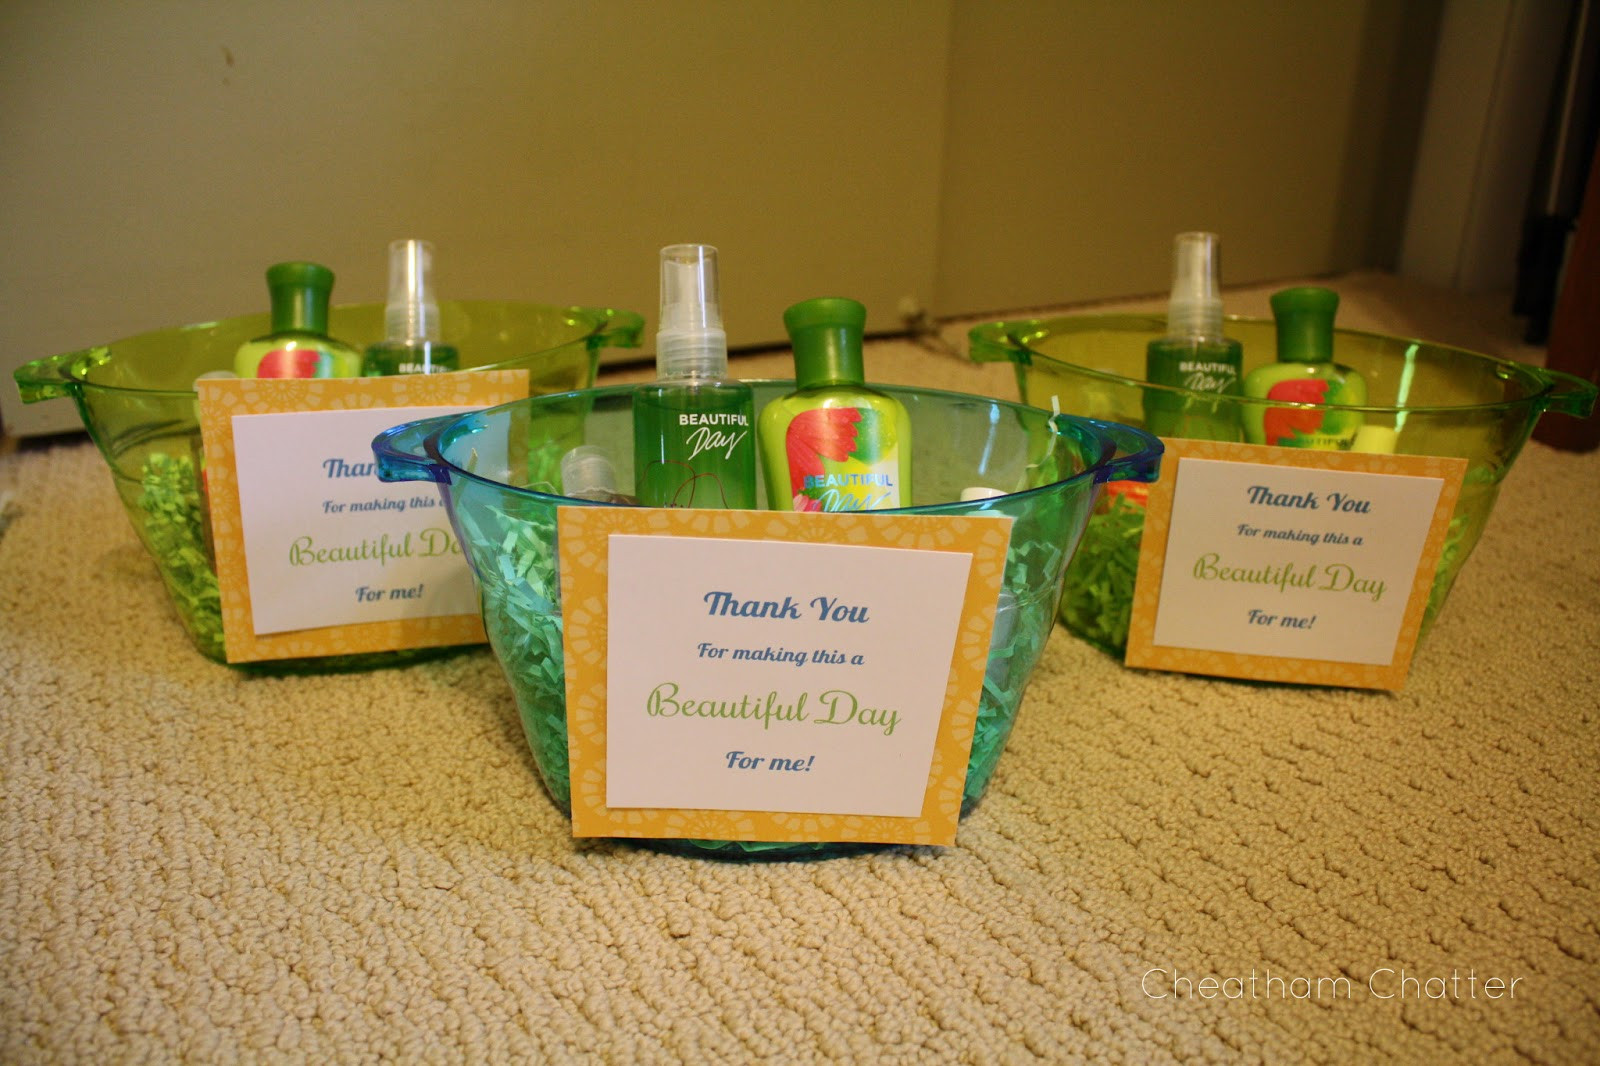 Gift Ideas For Baby Shower Host  Cheatham Chatter Baby Shower Favors & Hostess Gifts